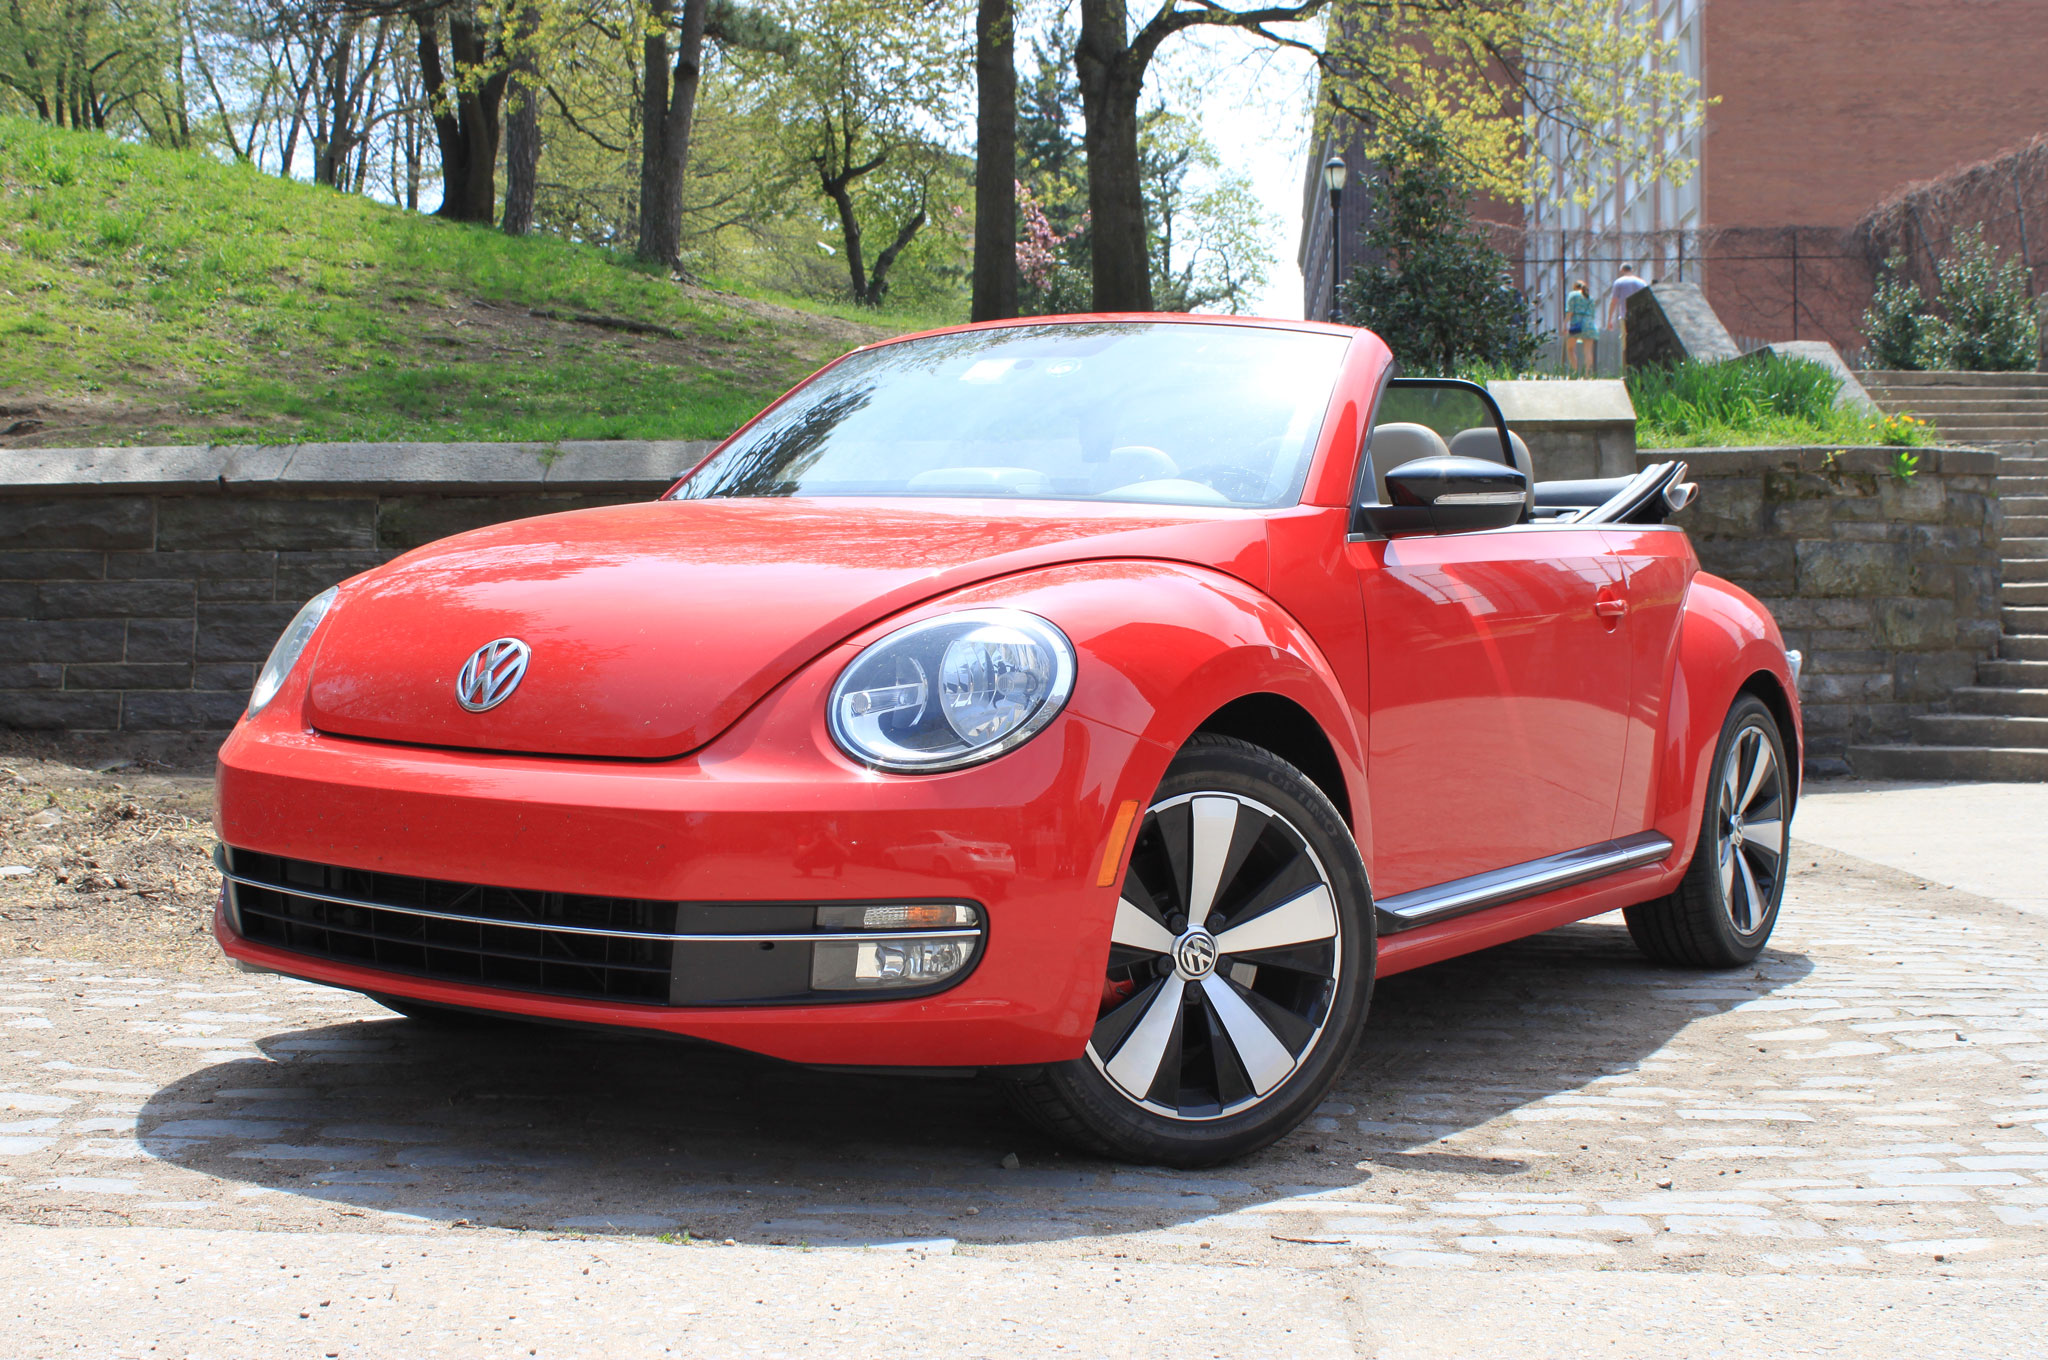 2013 Volkswagen Beetle Turbo Convertible Front Left View1